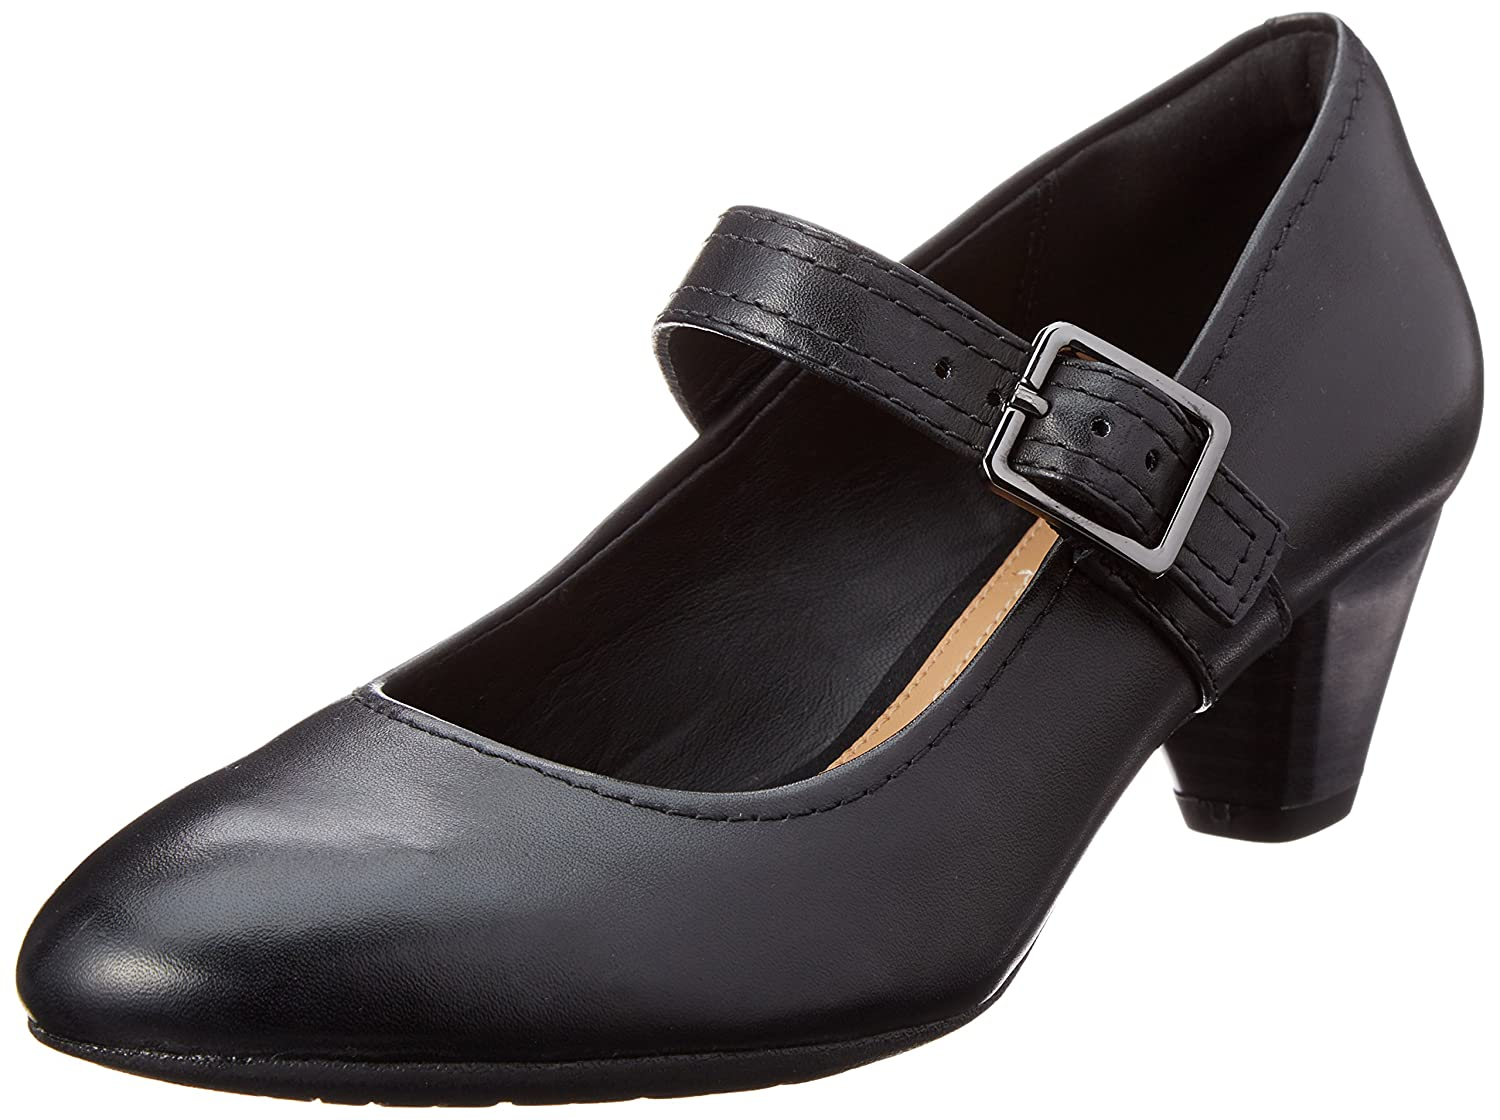 Clarks Womens Black Leather 'Denny Date' Mid Block Heel Court Shoes